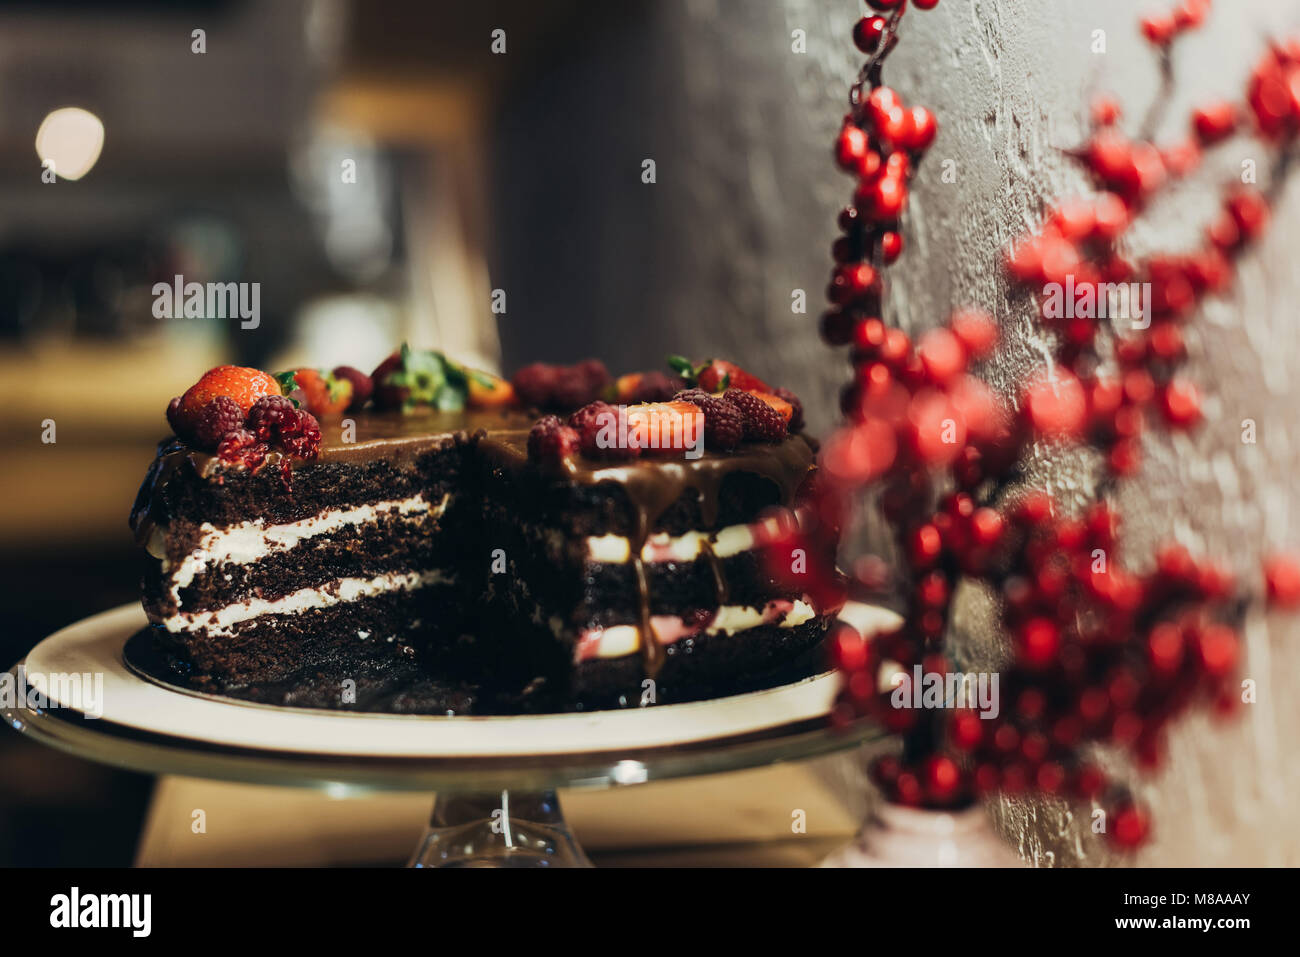 Gâteau au chocolat on cake stand Photo Stock